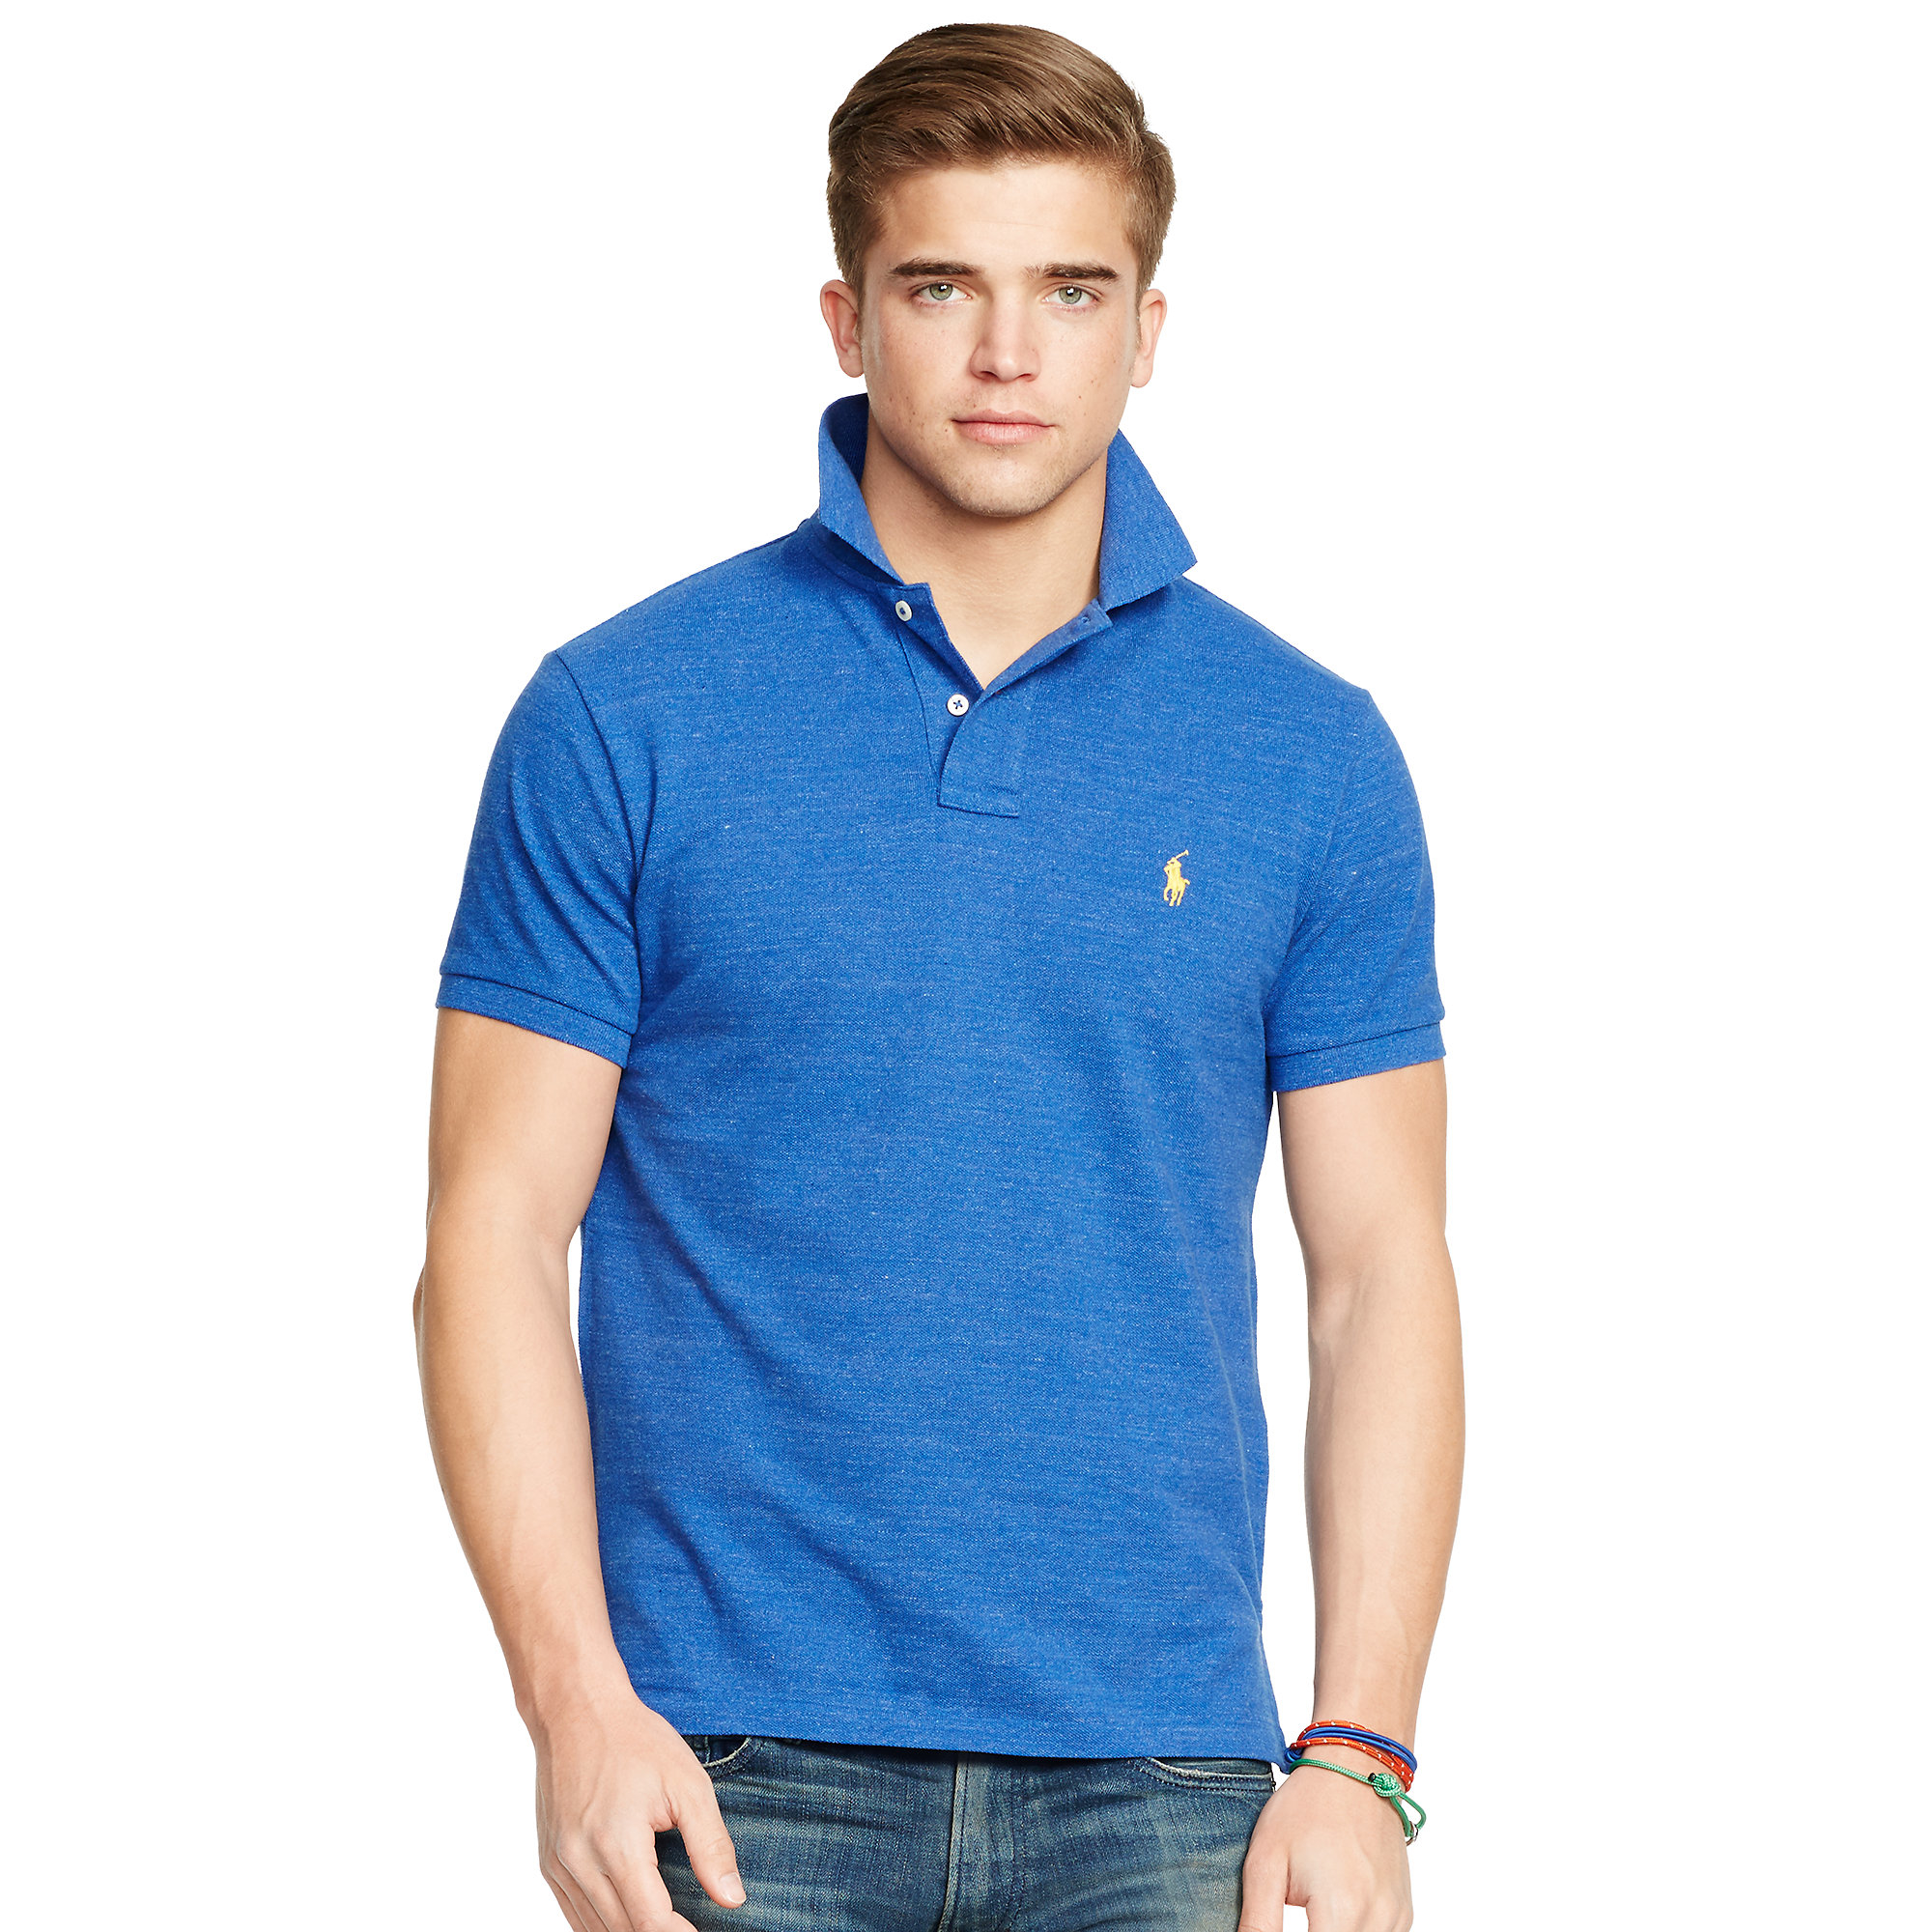 5dfcd9f5d Polo ralph lauren Custom-fit Mesh Polo Shirt in Blue for Men